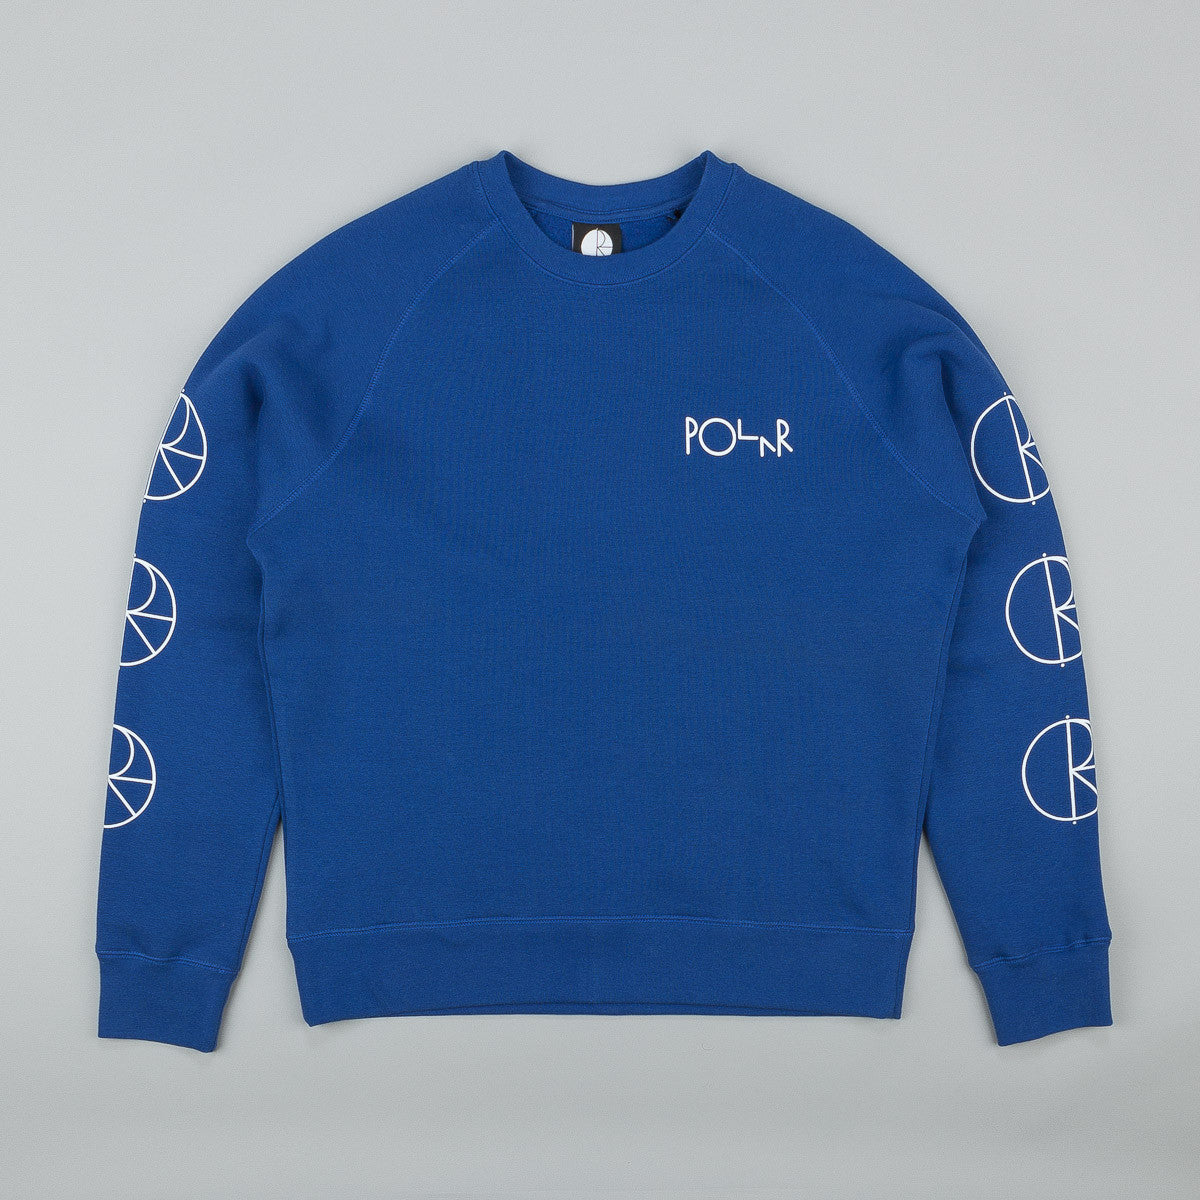 Polar Racing Sweatshirt